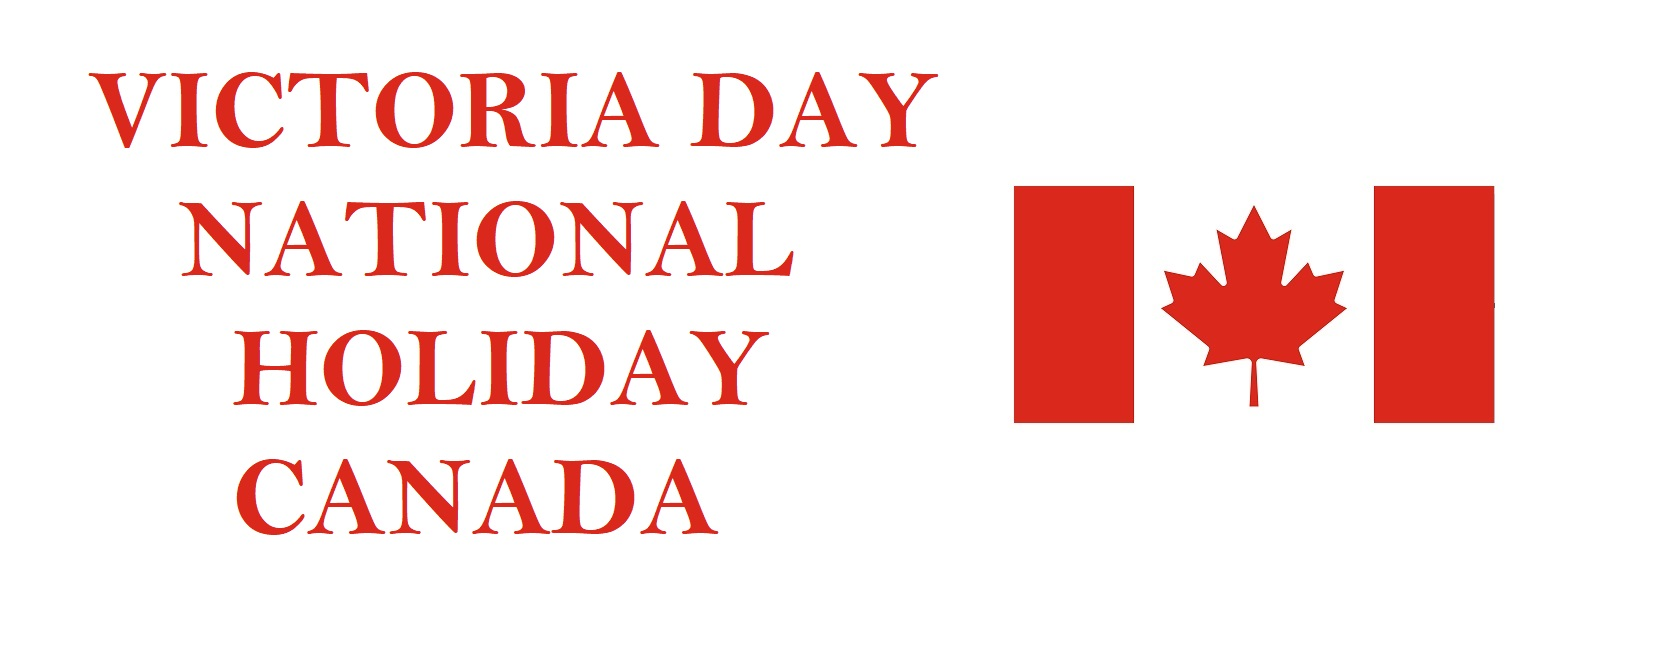 Victoria Day National Holiday, Canada